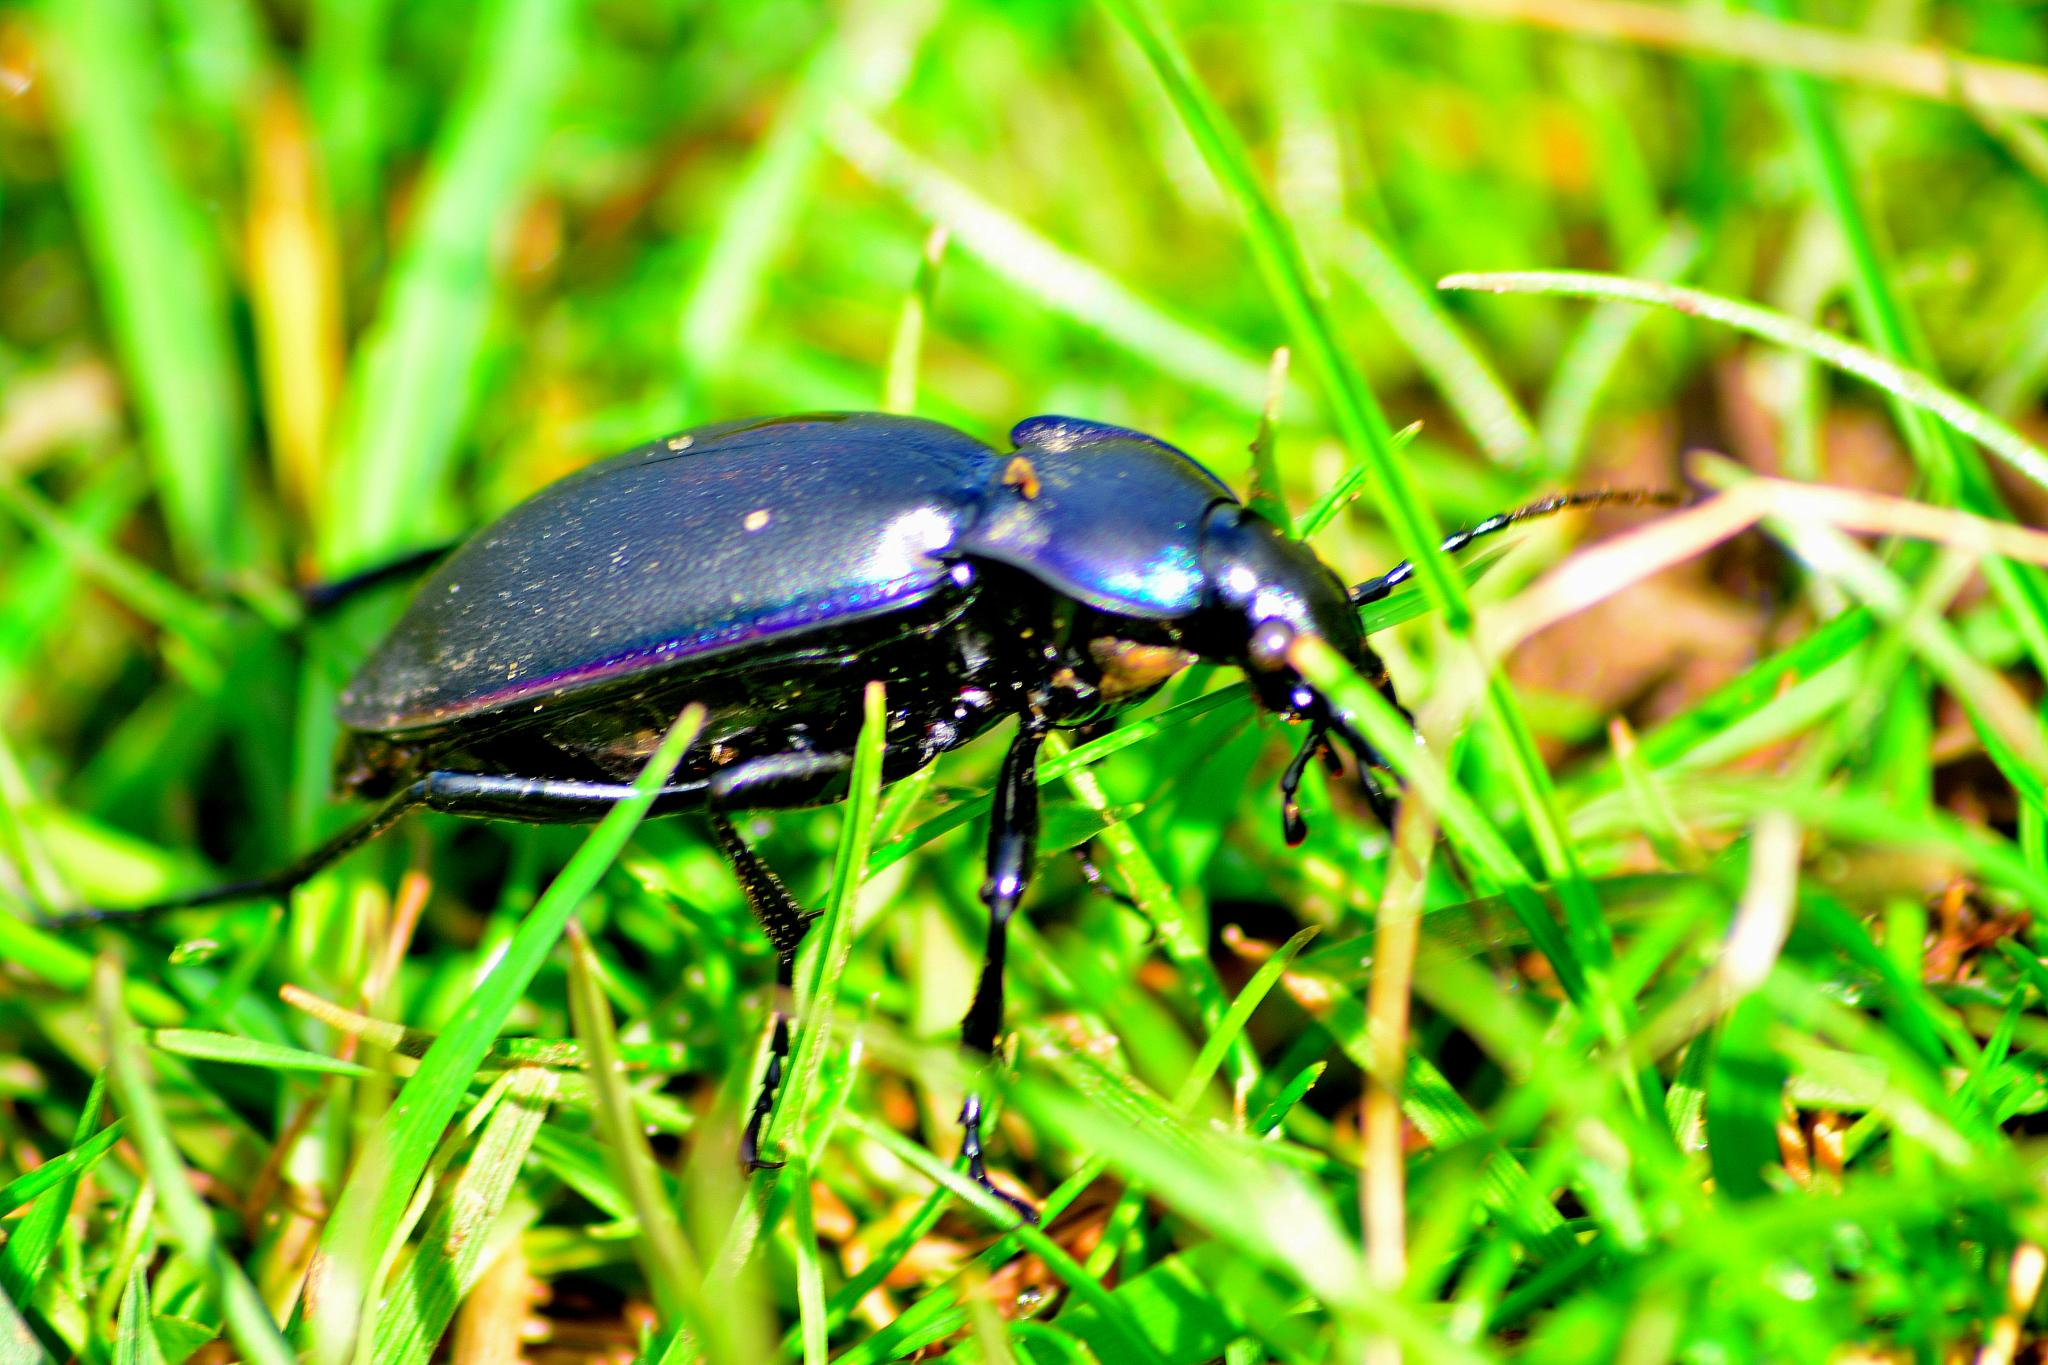 Black Beetle in the grass by tim.wells.79